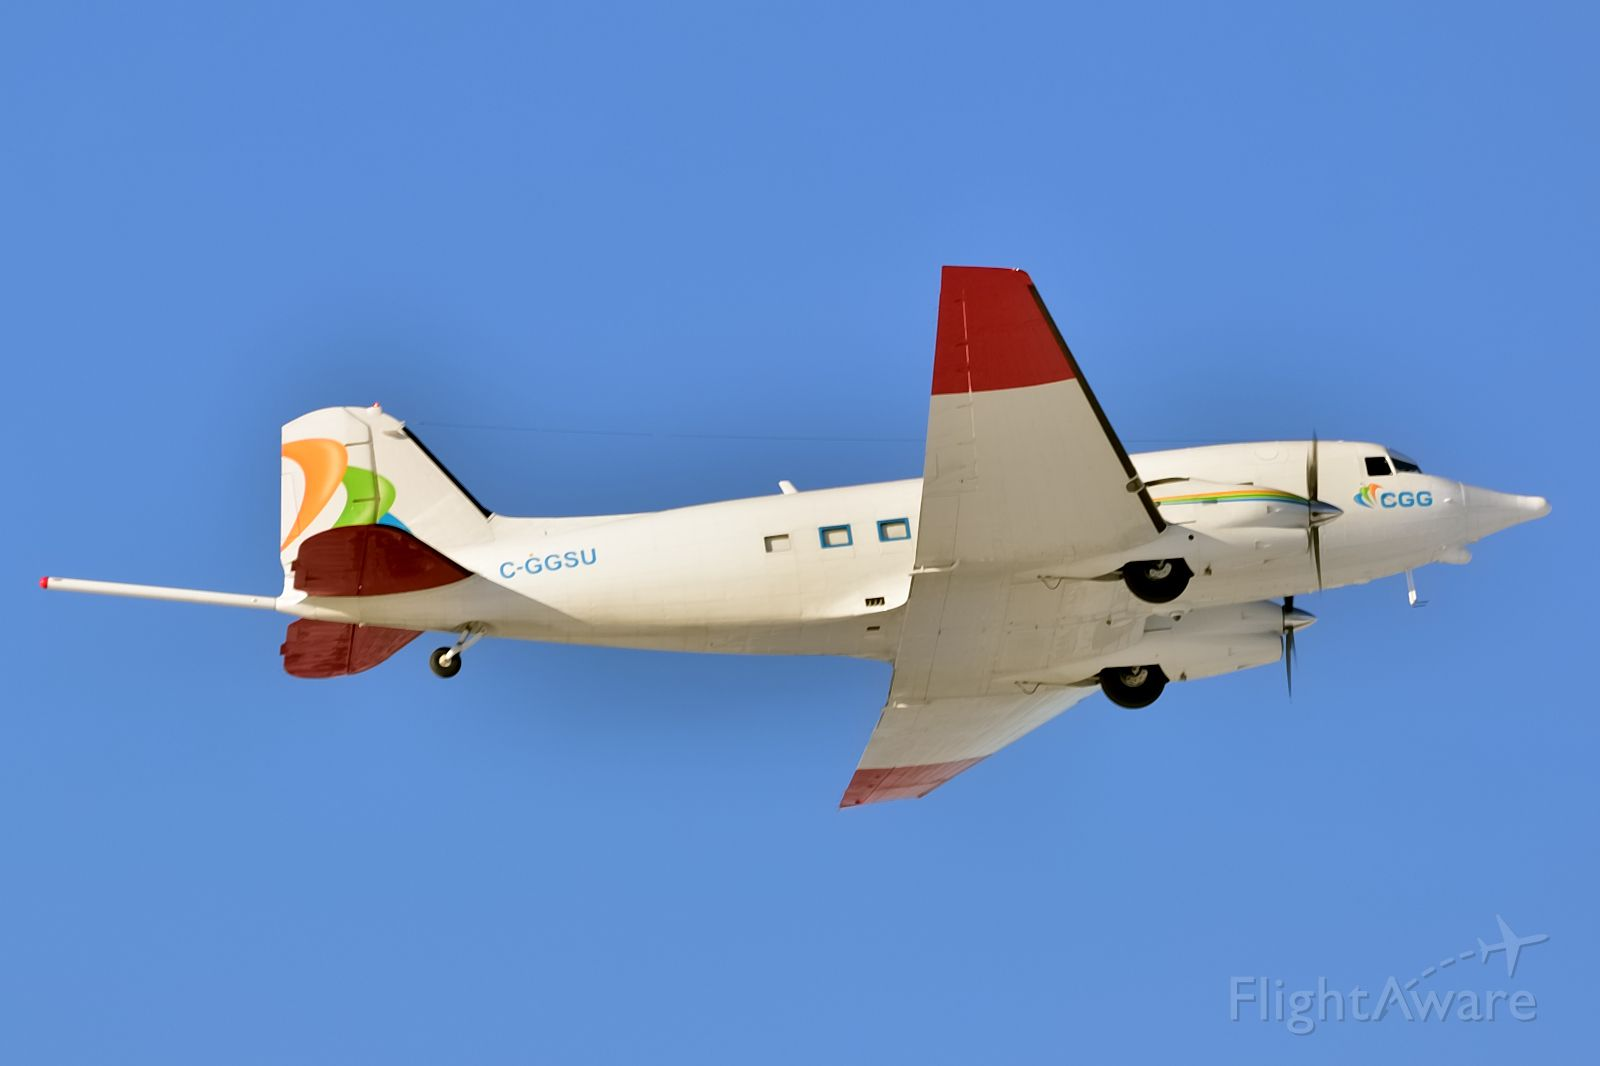 Douglas DC-3 (C-GGSU) - Fitted with gears to support oil and gas exploration projects.